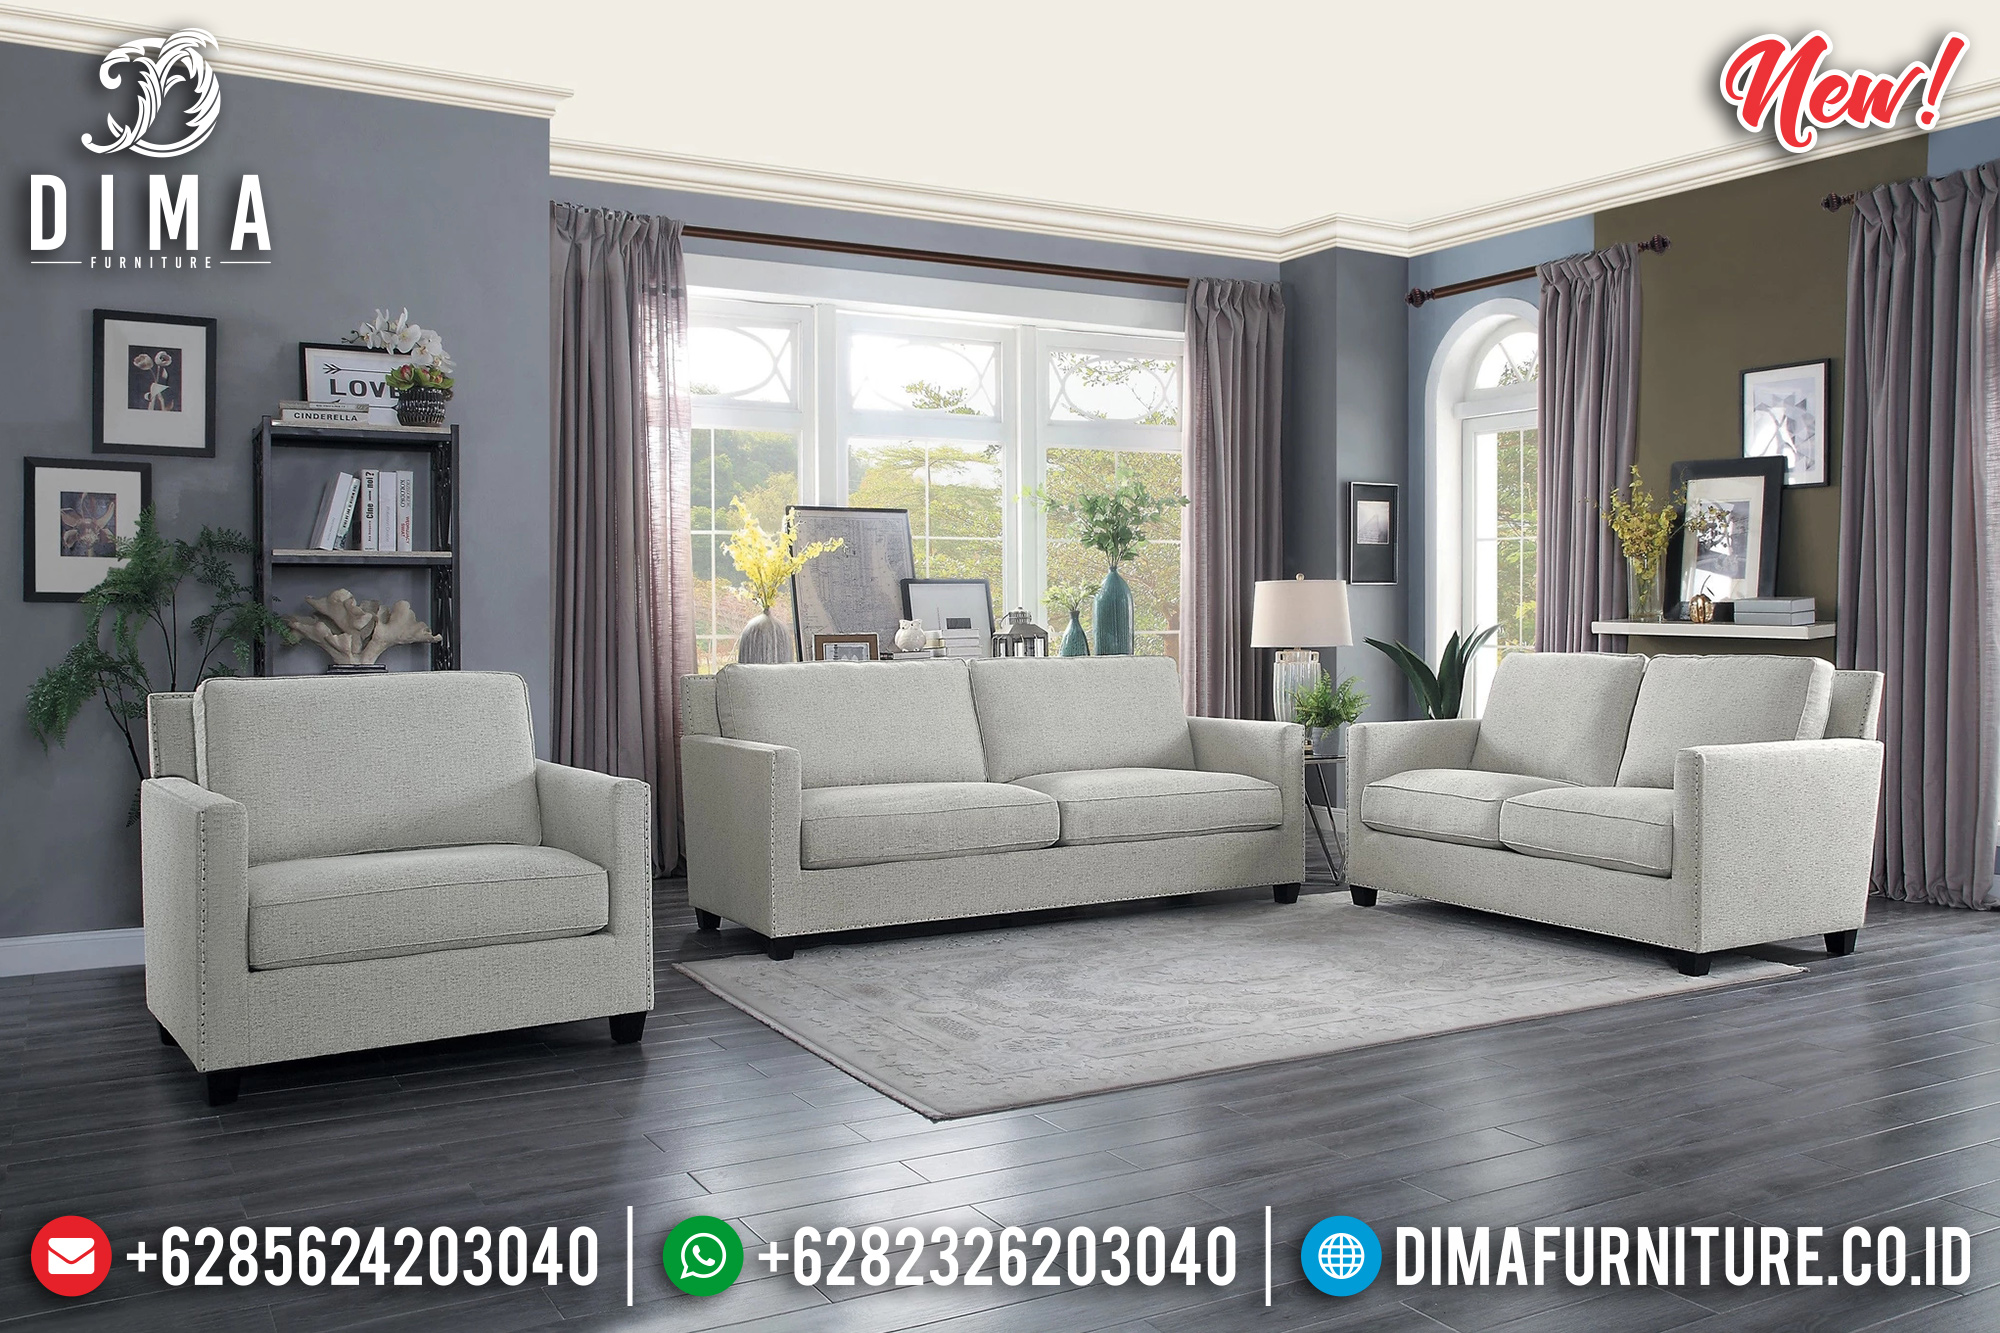 New Desain Sofa Tamu Minimalis Beautiful Design Interior Inspiring TTJ-0906